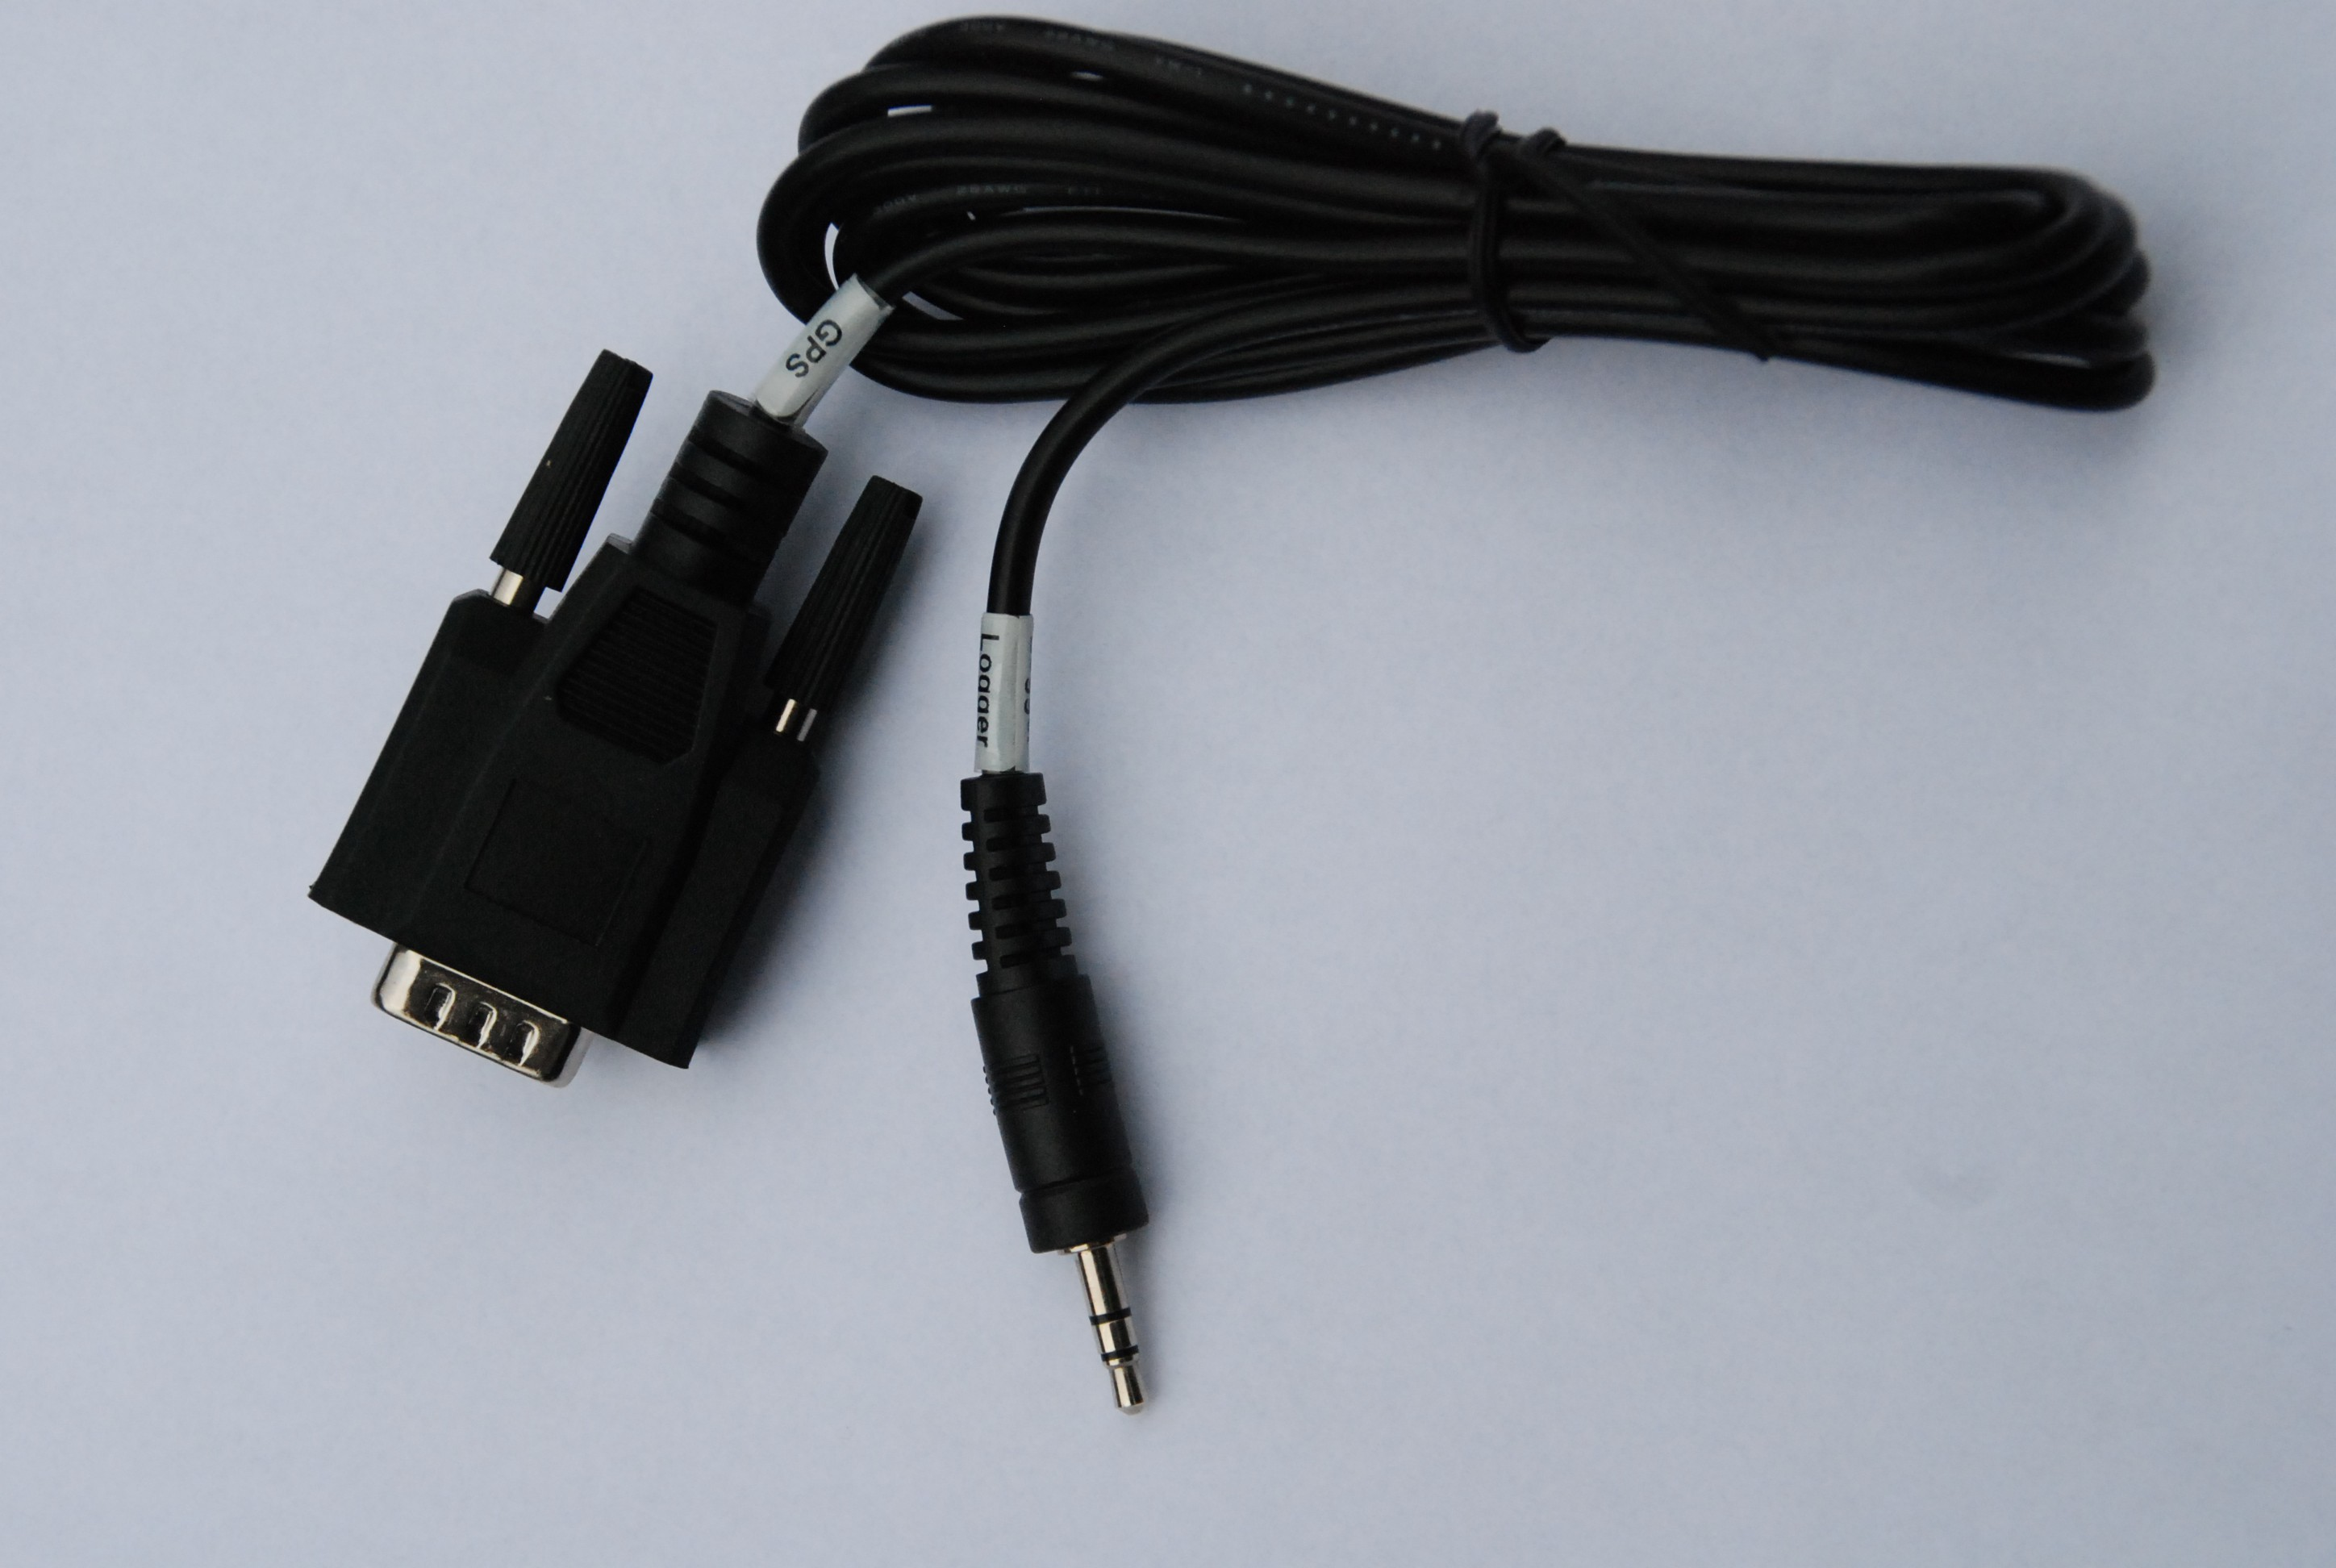 GPS / DGPS Cable for connecting GPS Device